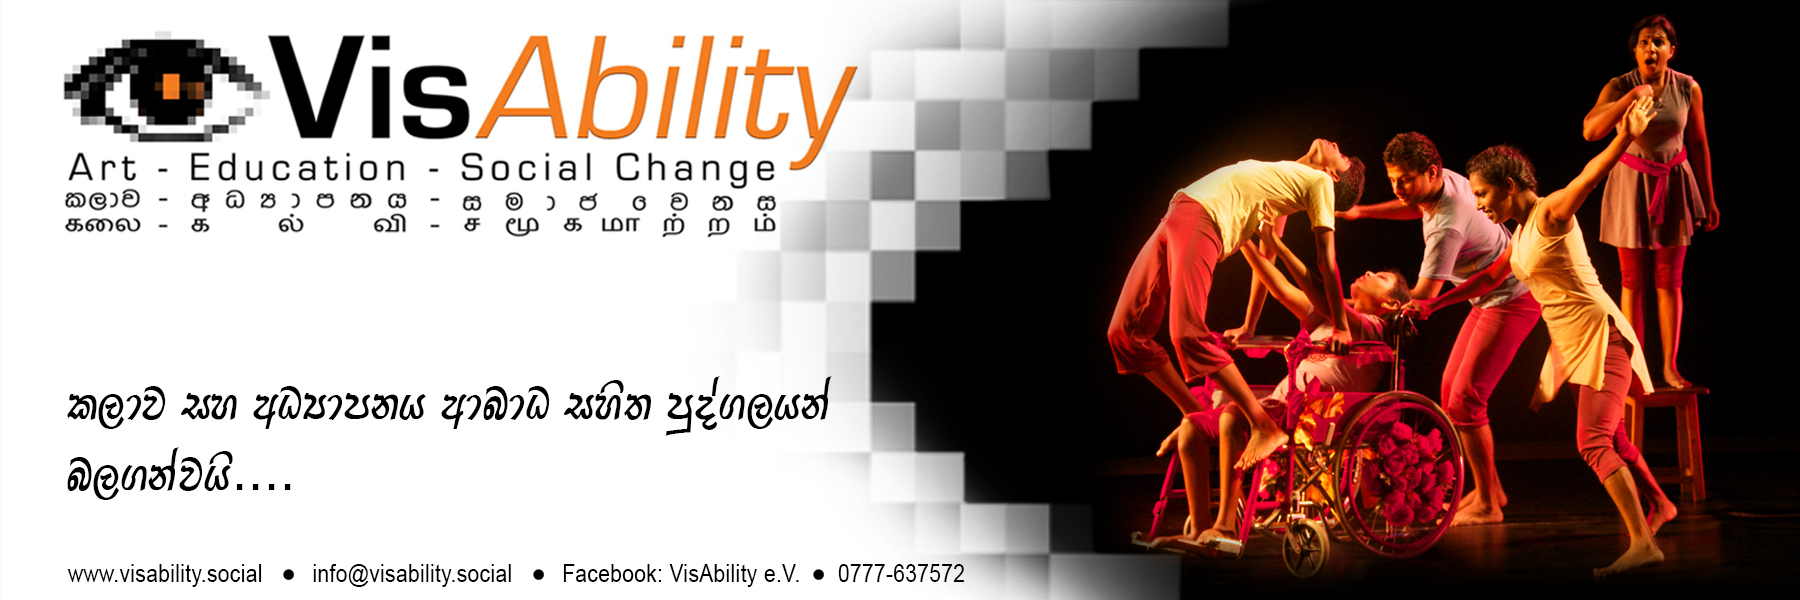 Book mark ViaAbility back image 3 sinhala